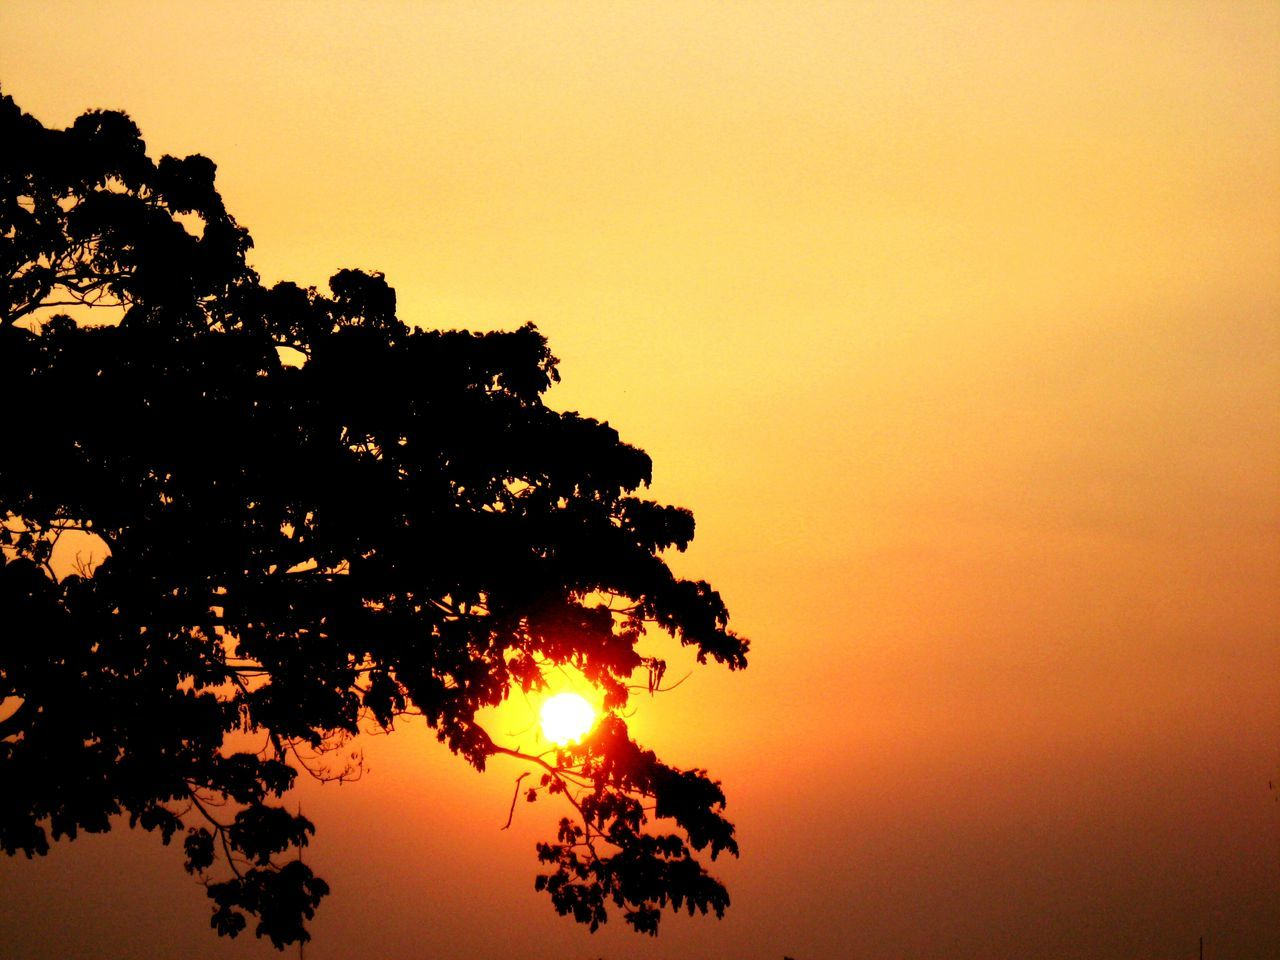 Behind the tree.... Sunset Silouette & Sky Tree Sun Leaves Sky Colorful Sky Dramaticsky Cloudporn Golden Hour Yellowgold Beauty In Nature Summer Time  Manila Philippines